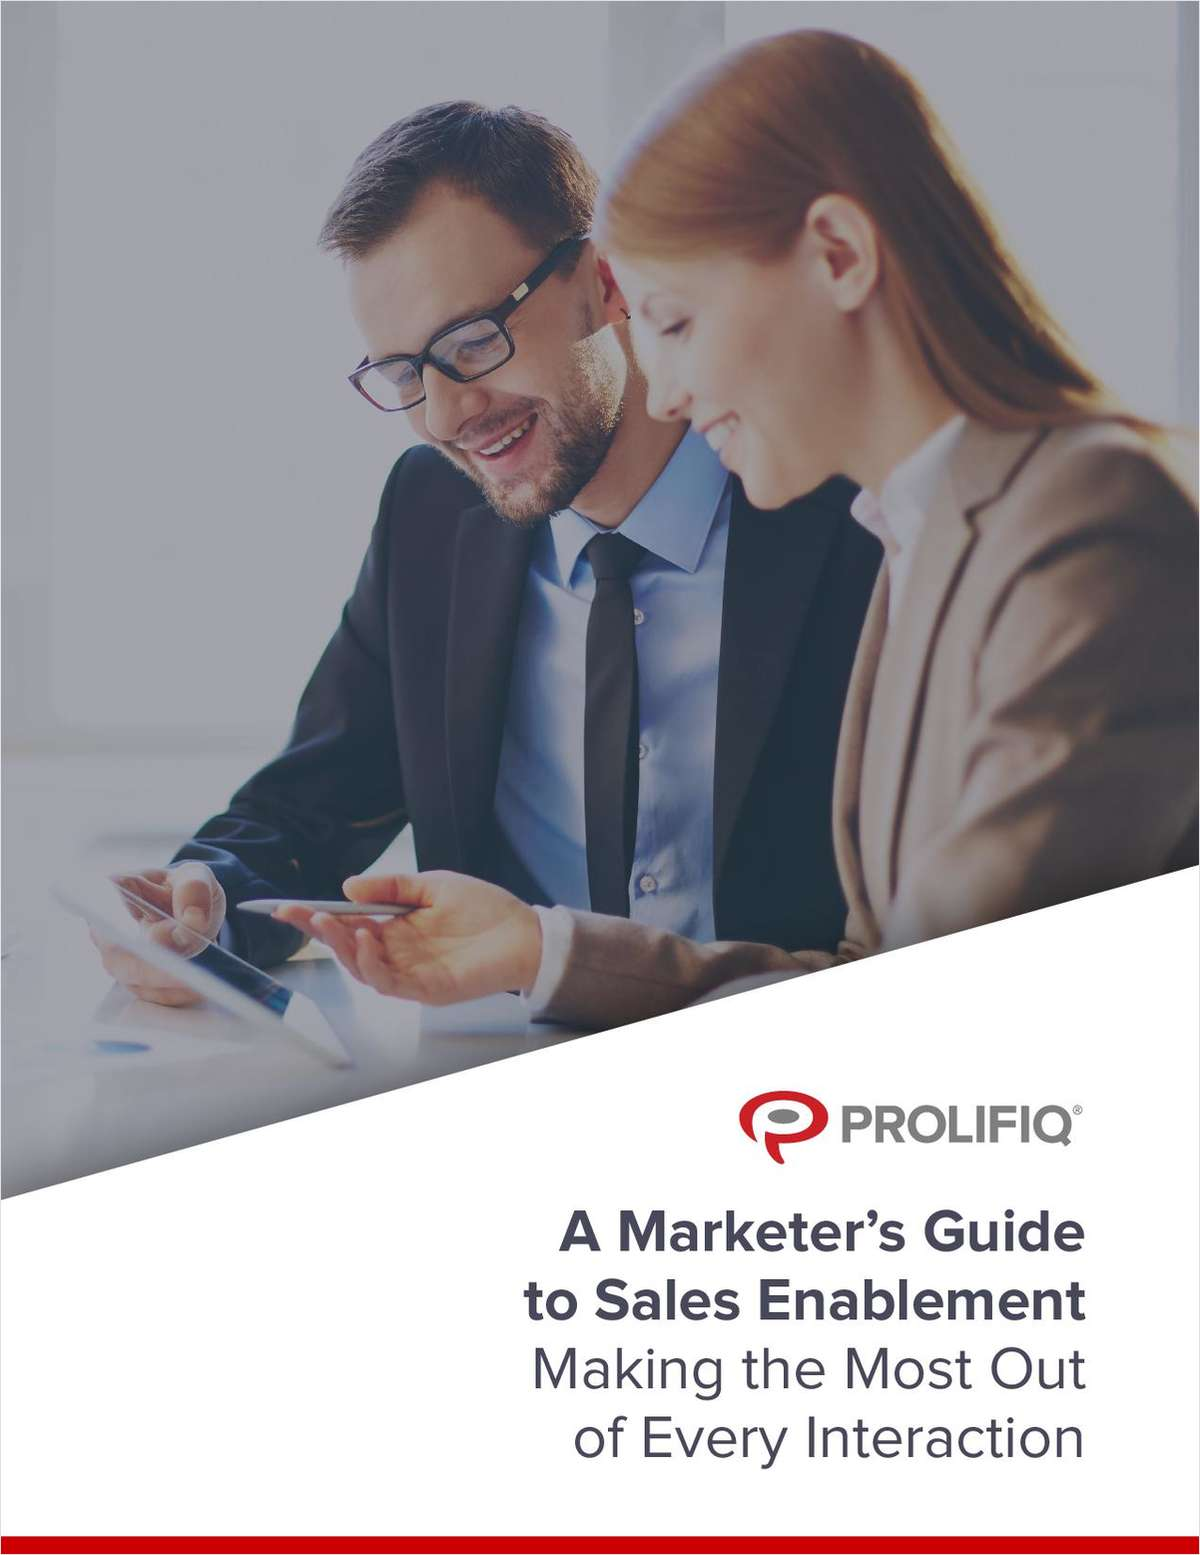 Marketer's Guide to Sales Enablement: Capitalize on Interactions